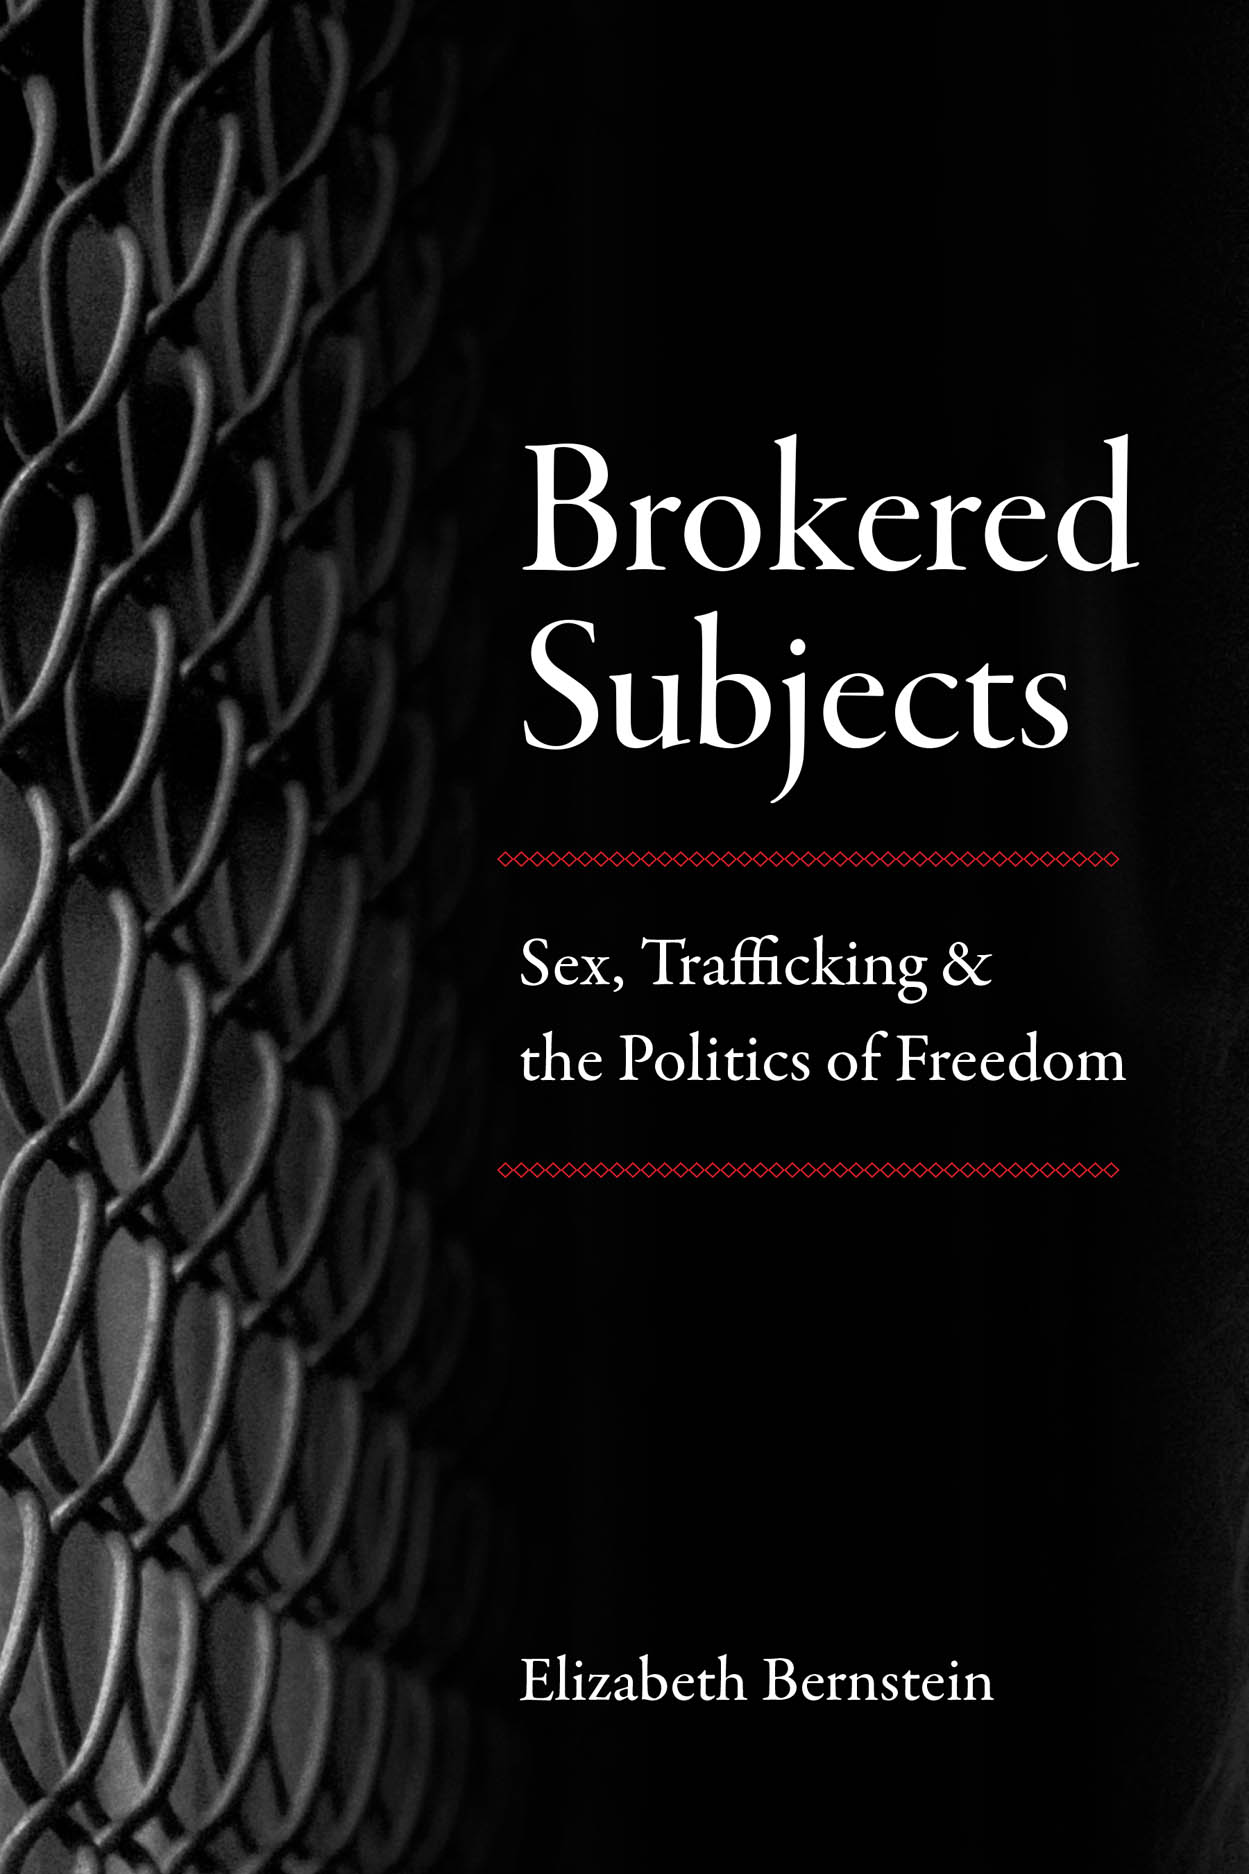 Brokered Subjects: Sex, Trafficking, and the Politics of Freedom